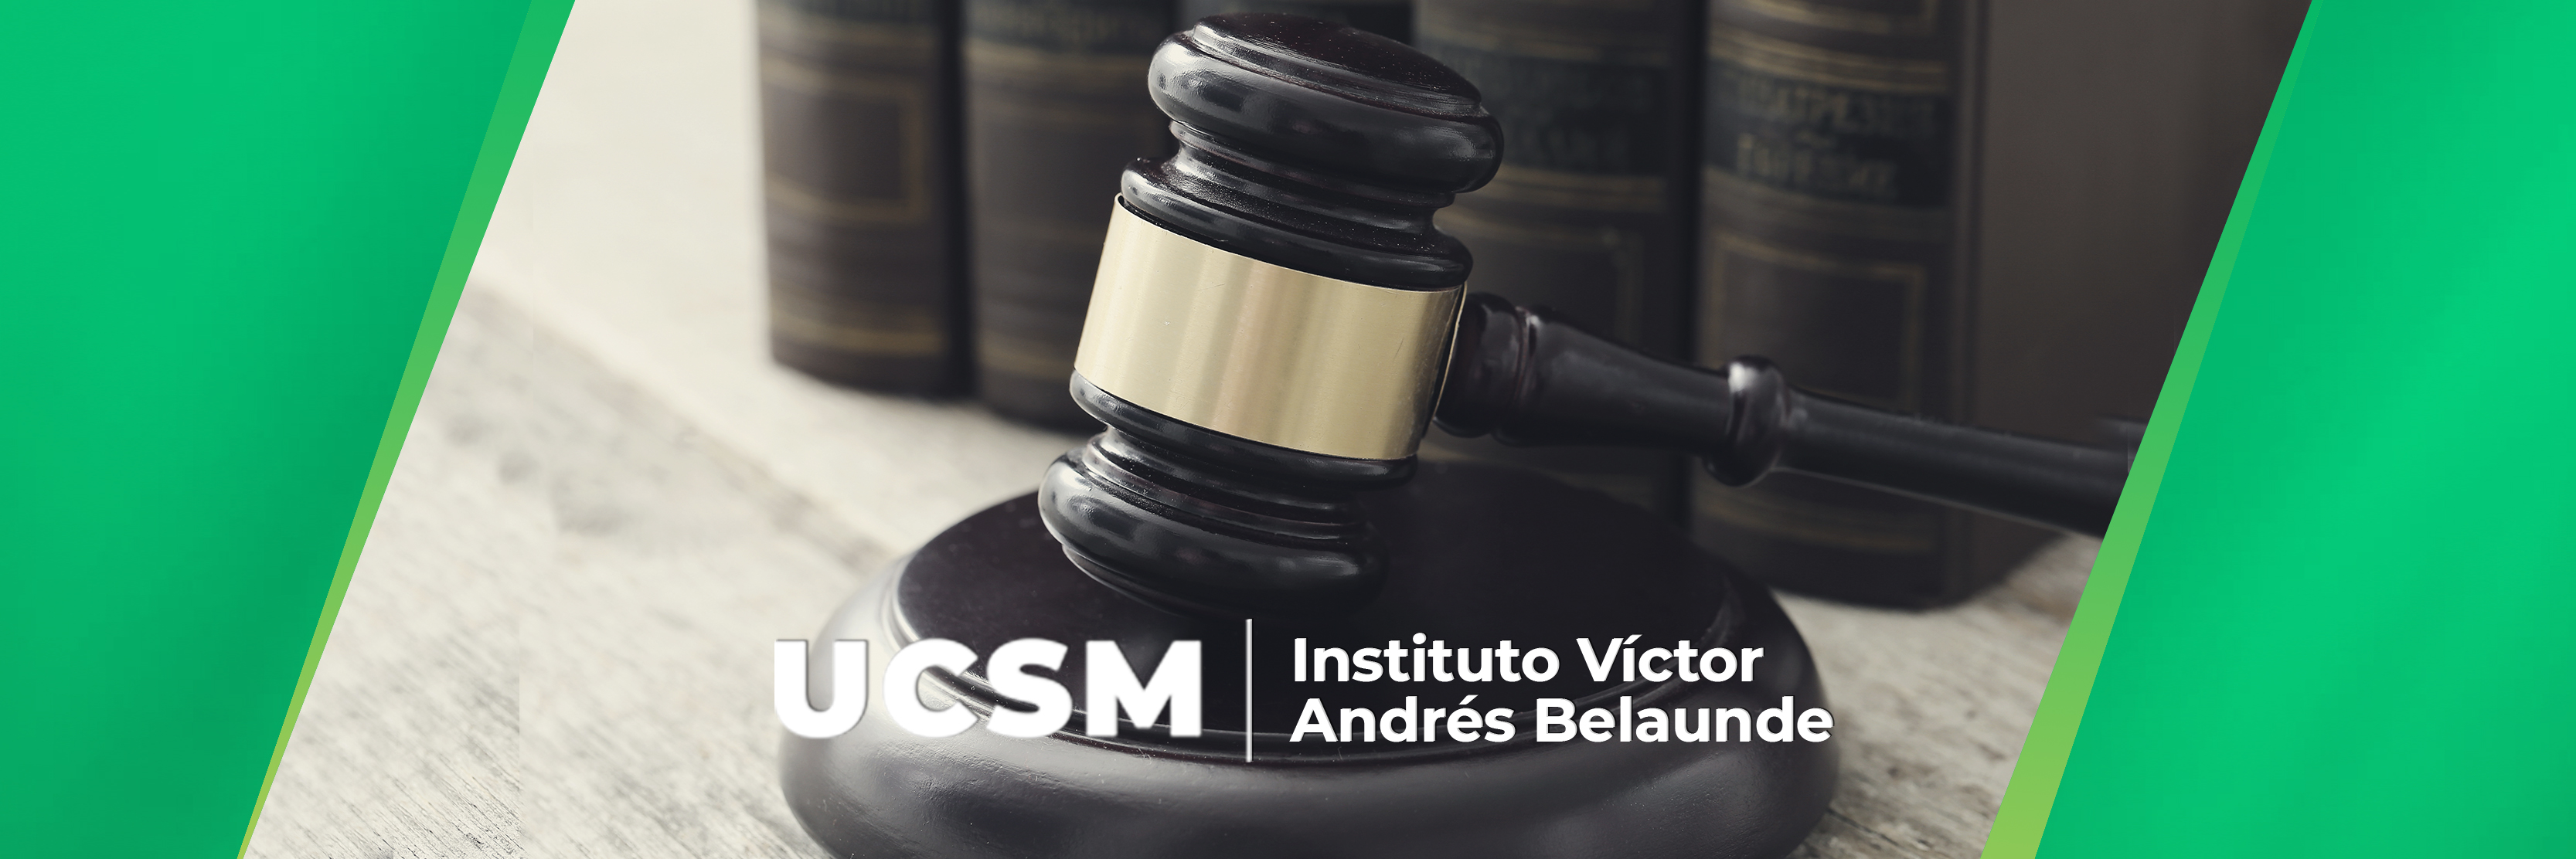 instituto-victor-andres-belaunde